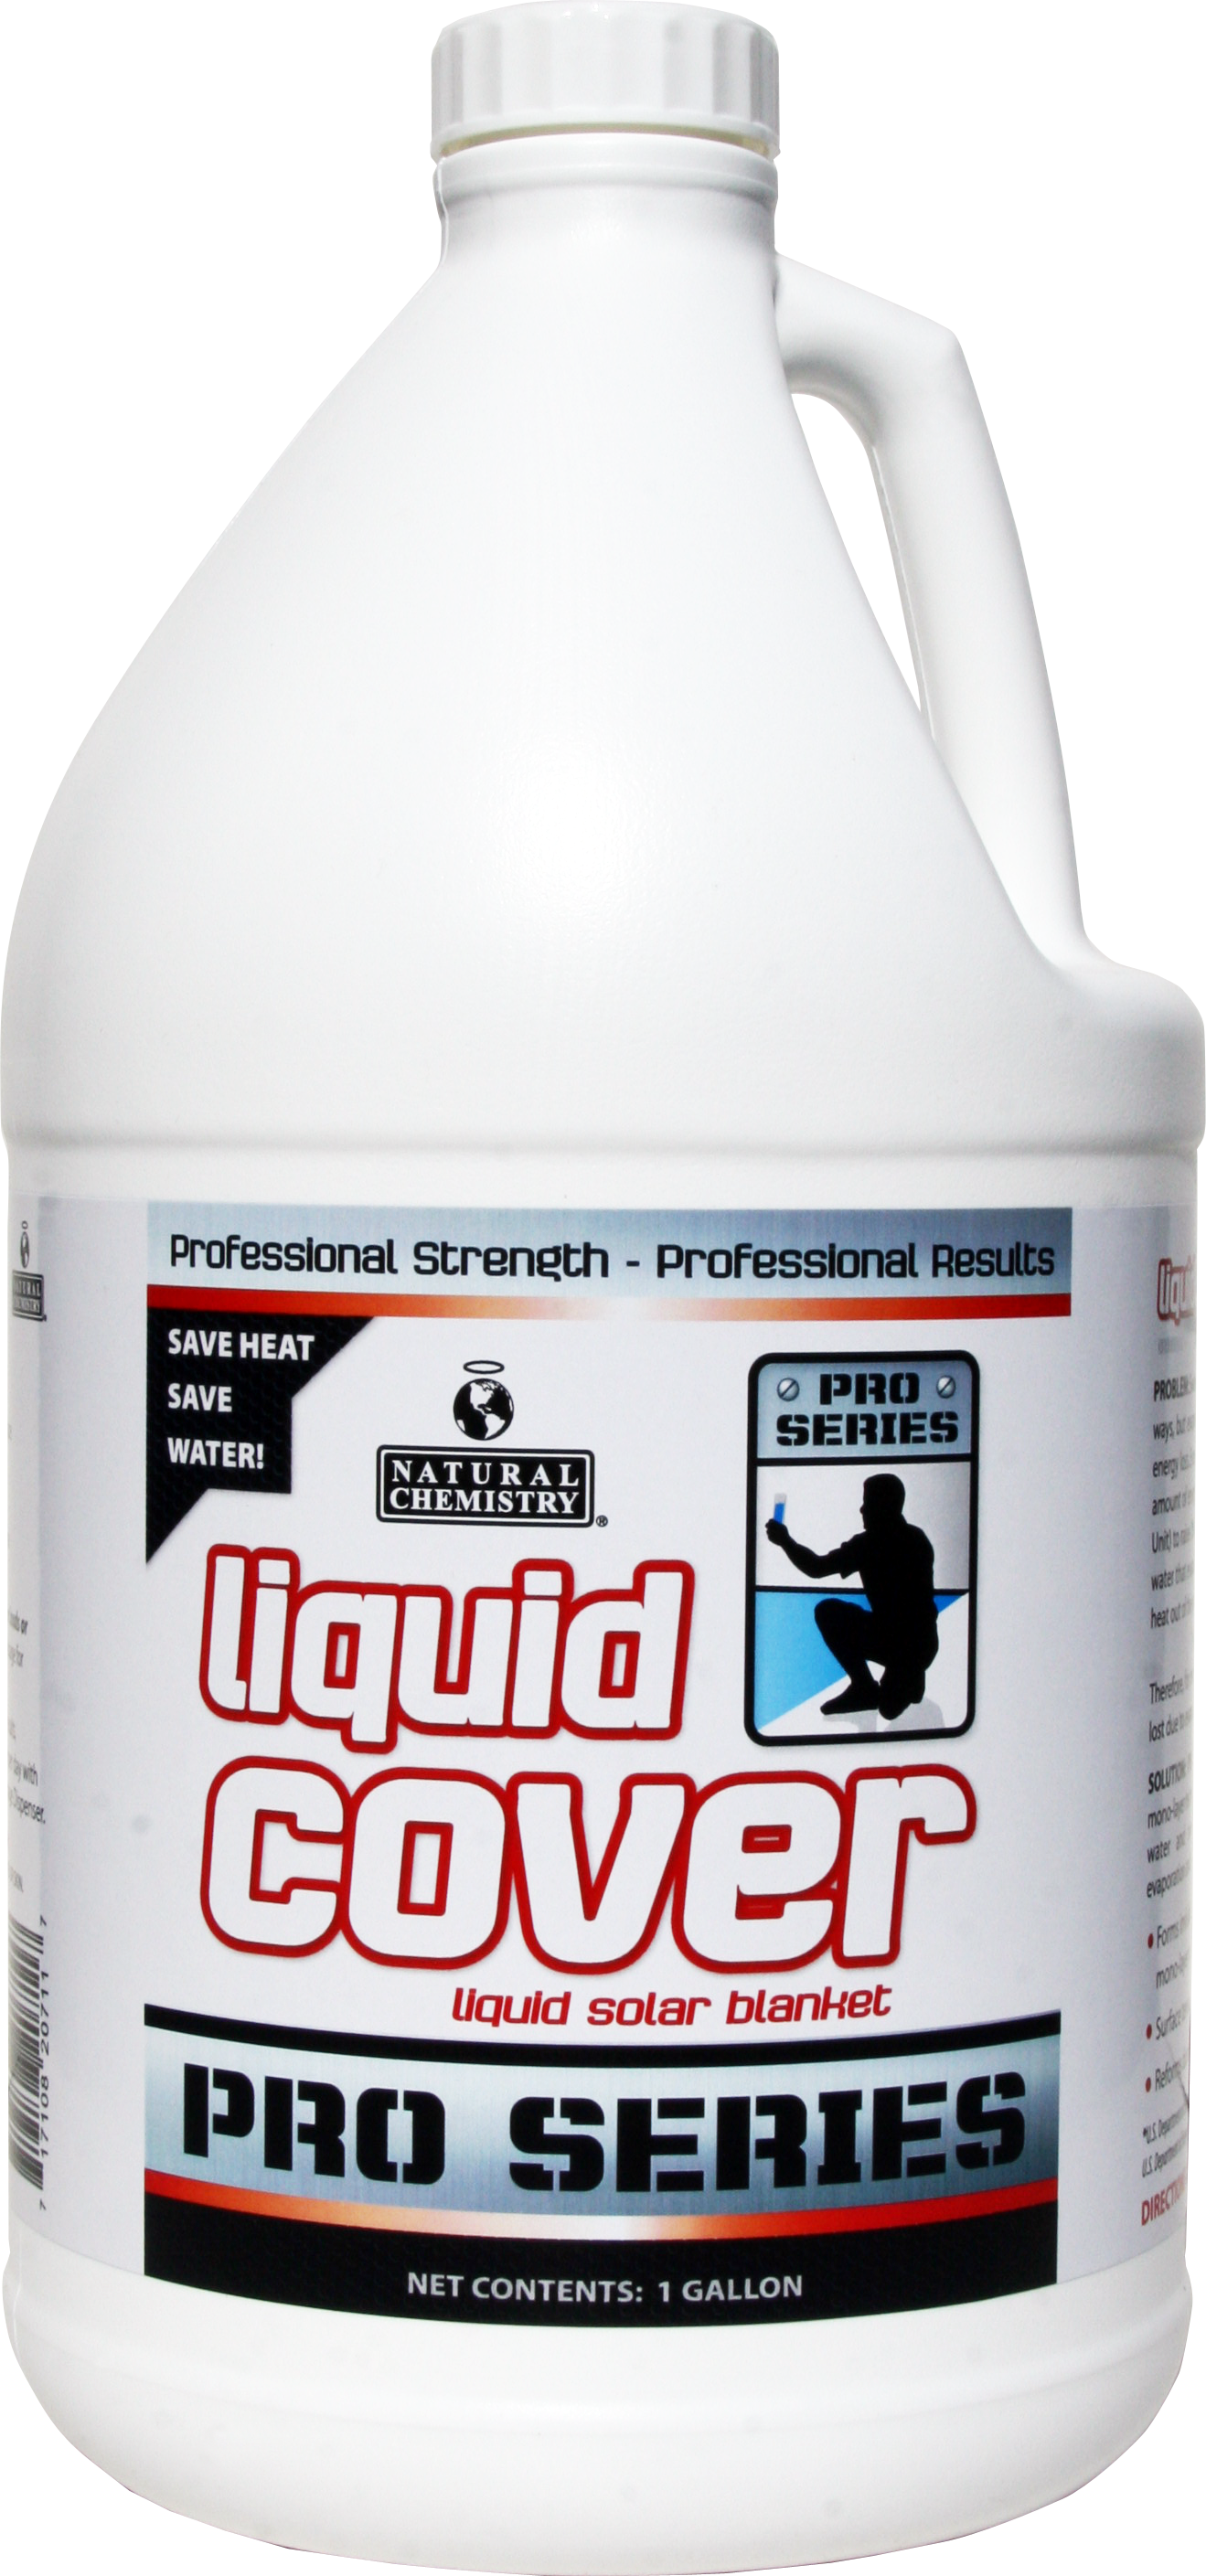 Liquid Cover   PRO SERIES Liquid Cover's advanced mono-layer technology offers users the ability to save water and money by dramatically decreasing evaporation and heat loss.